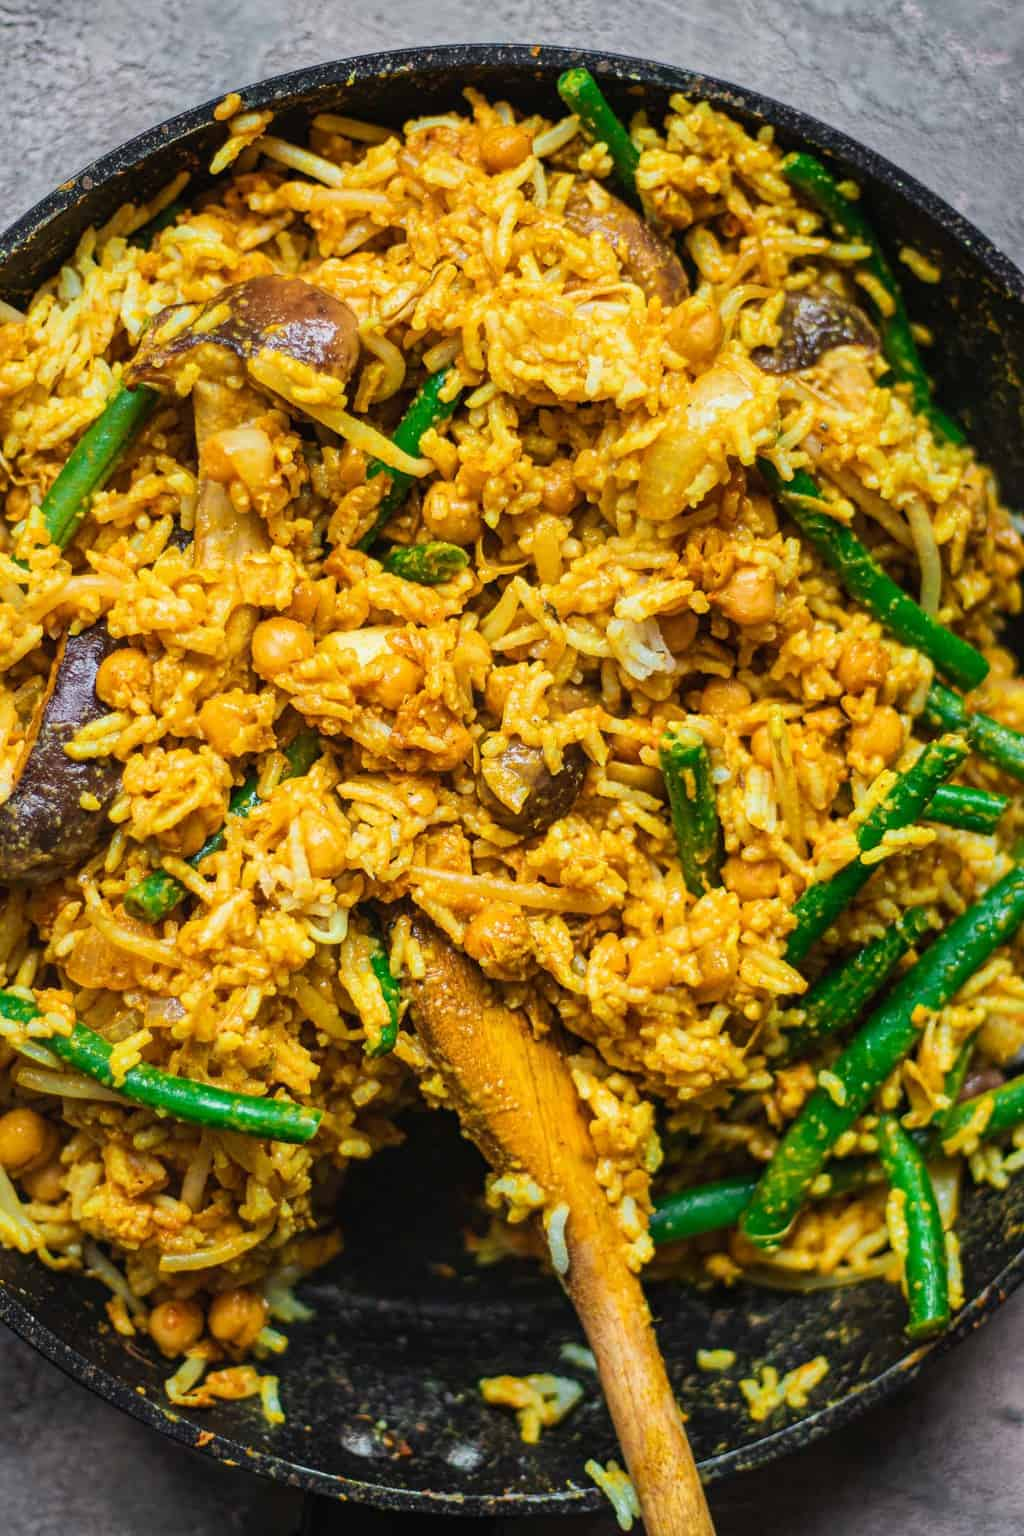 Vegetable fried rice in a frying pan